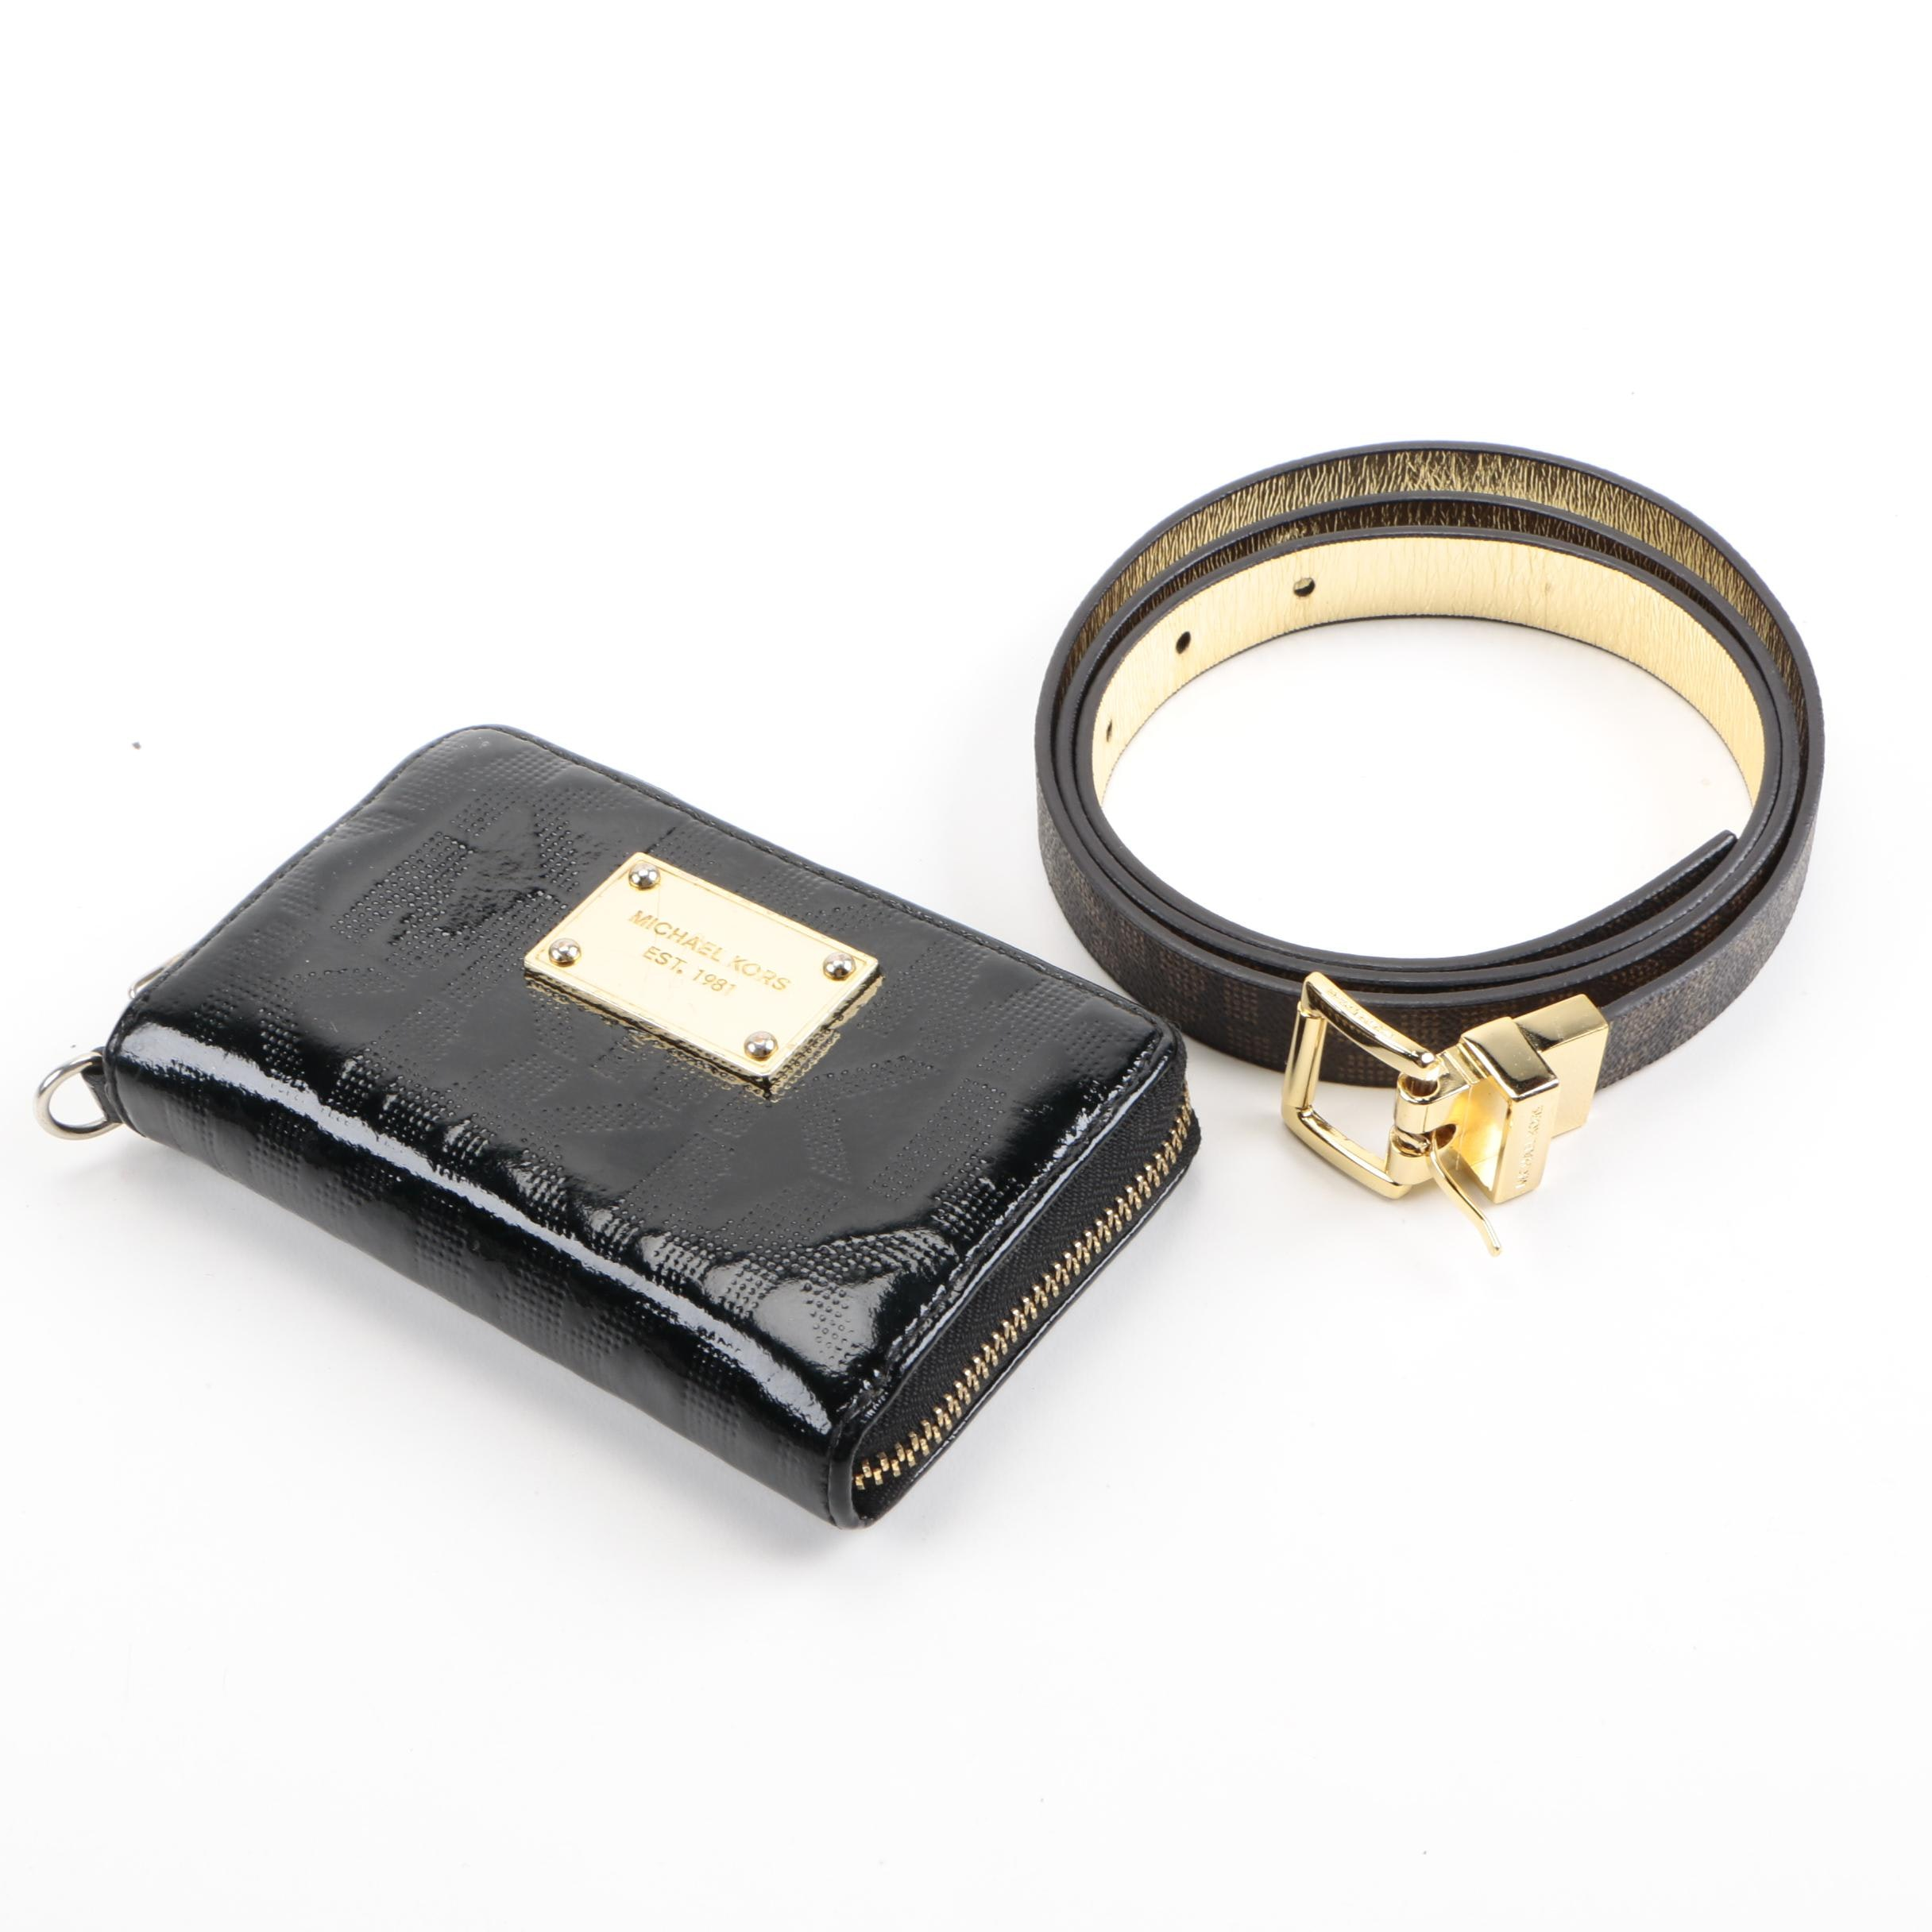 Michael Kors Patent Leather Wallet and Belt